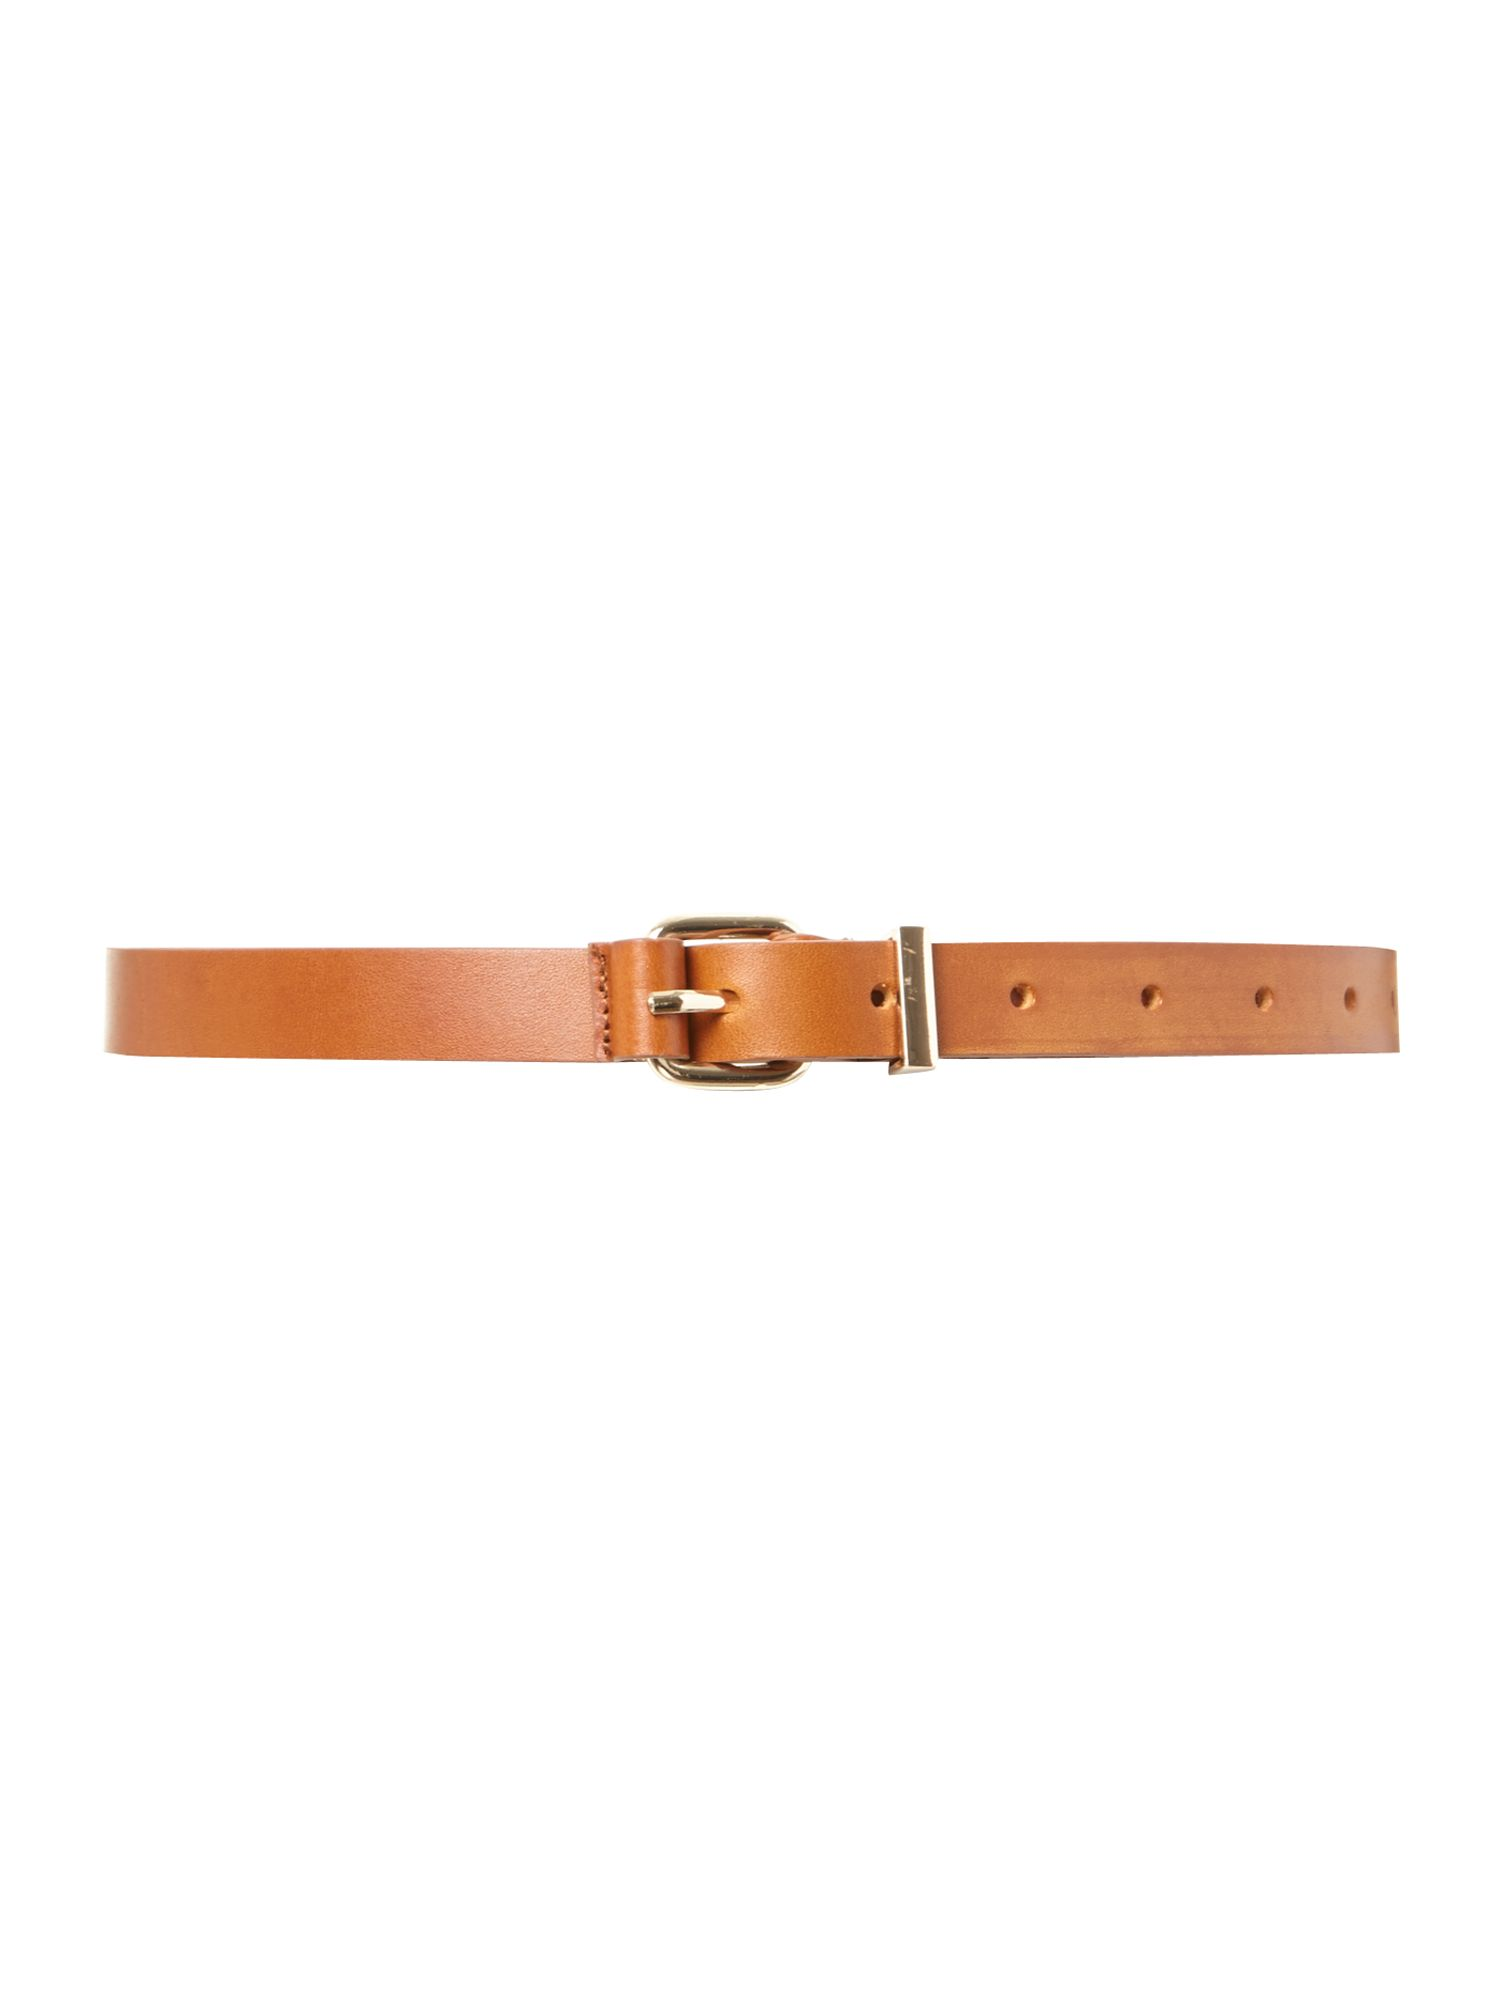 Metal keeper belt